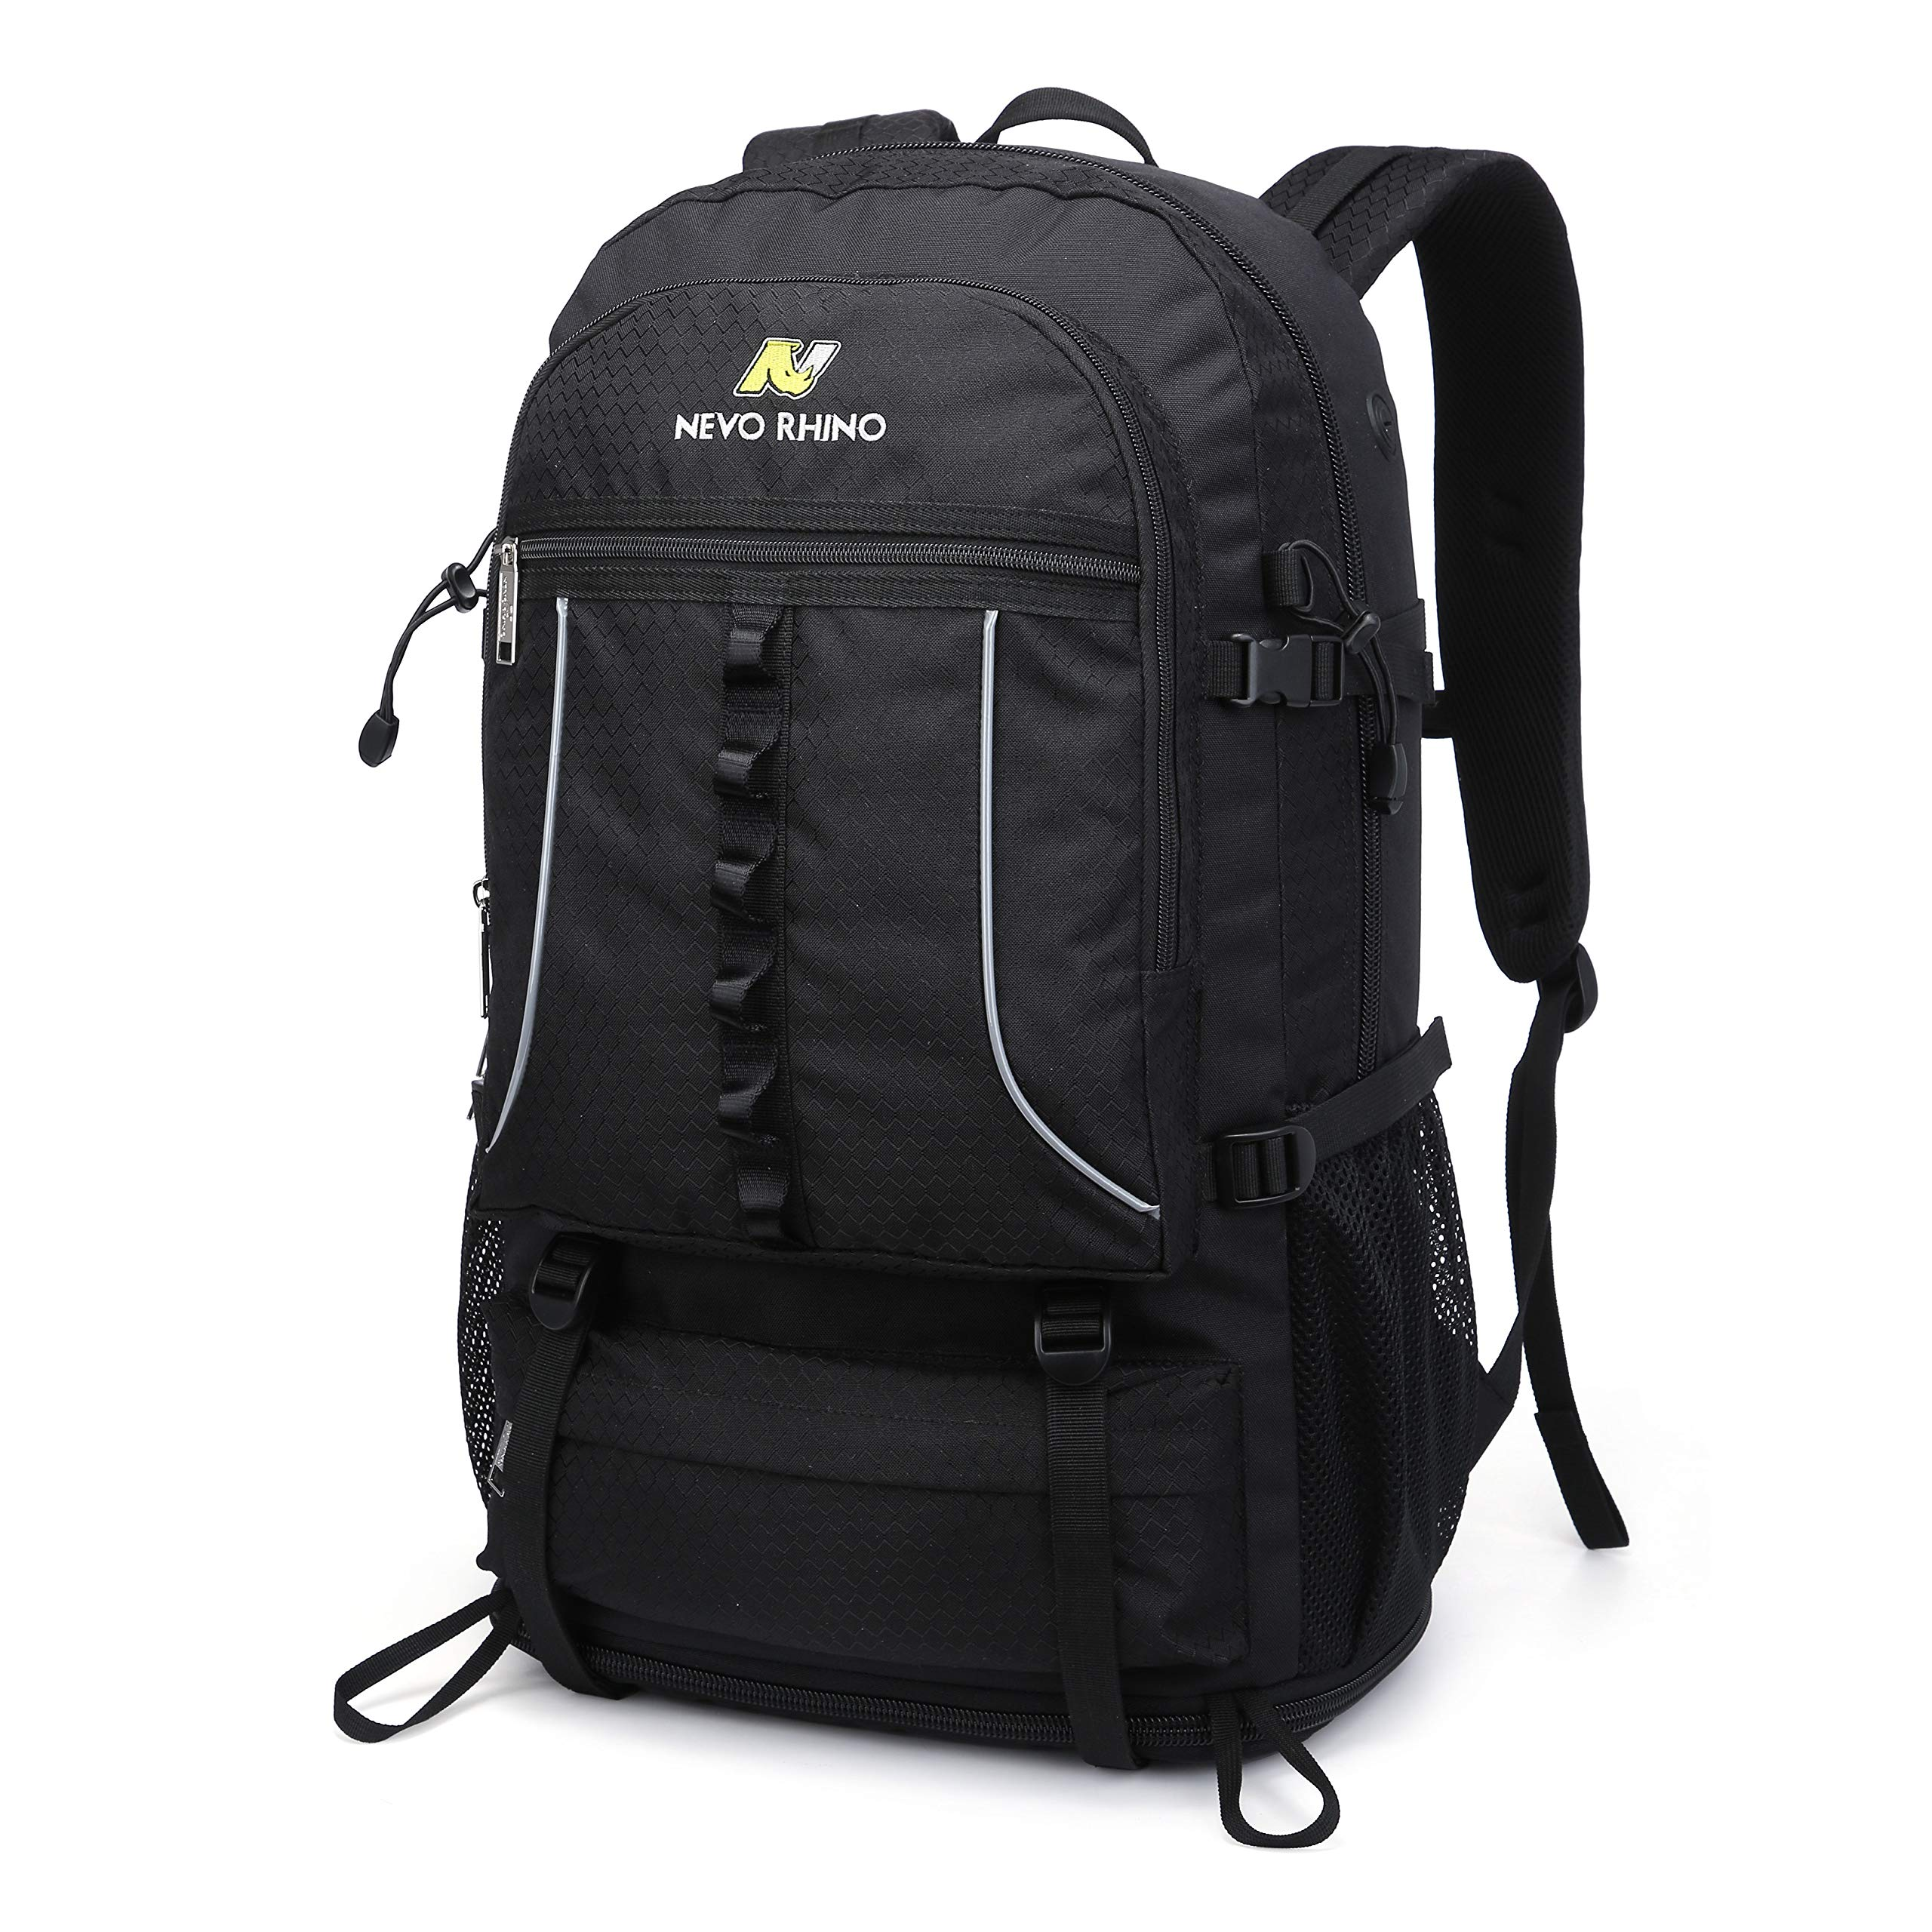 NEVO RHINO 45L Hiking Backpack, Expandable Large Capacity Daypack,Lightweight Backpack for Camping Climbing by N NEVO RHINO